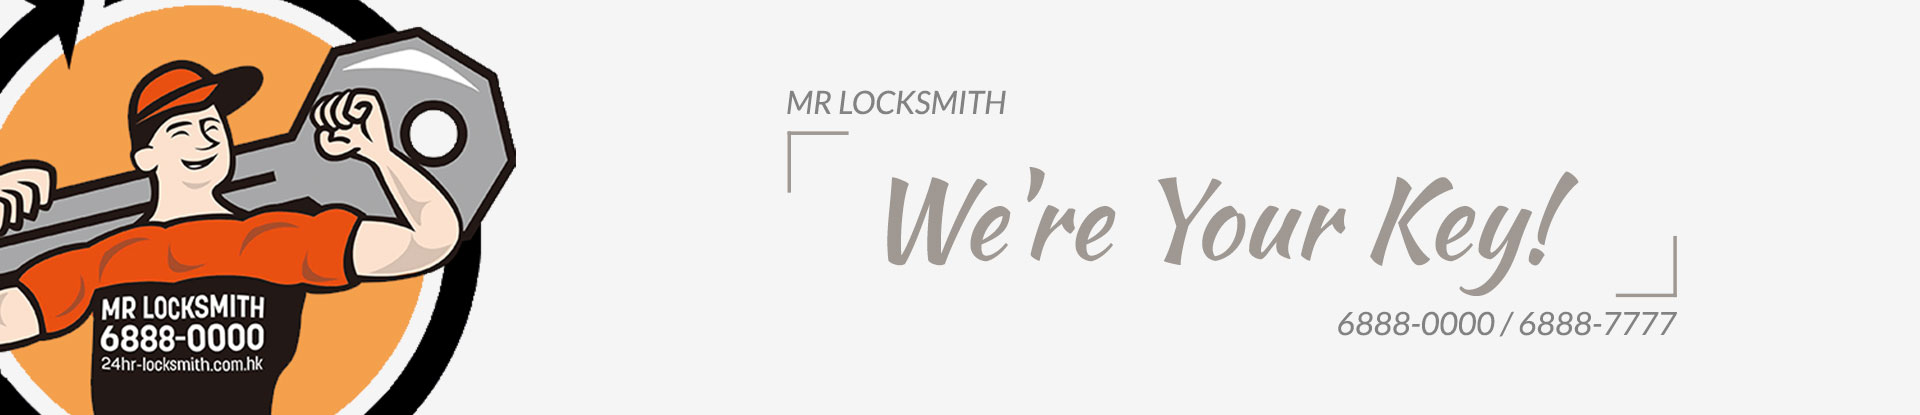 Tai Tam Locksmith -Locksmith in Tai Tam